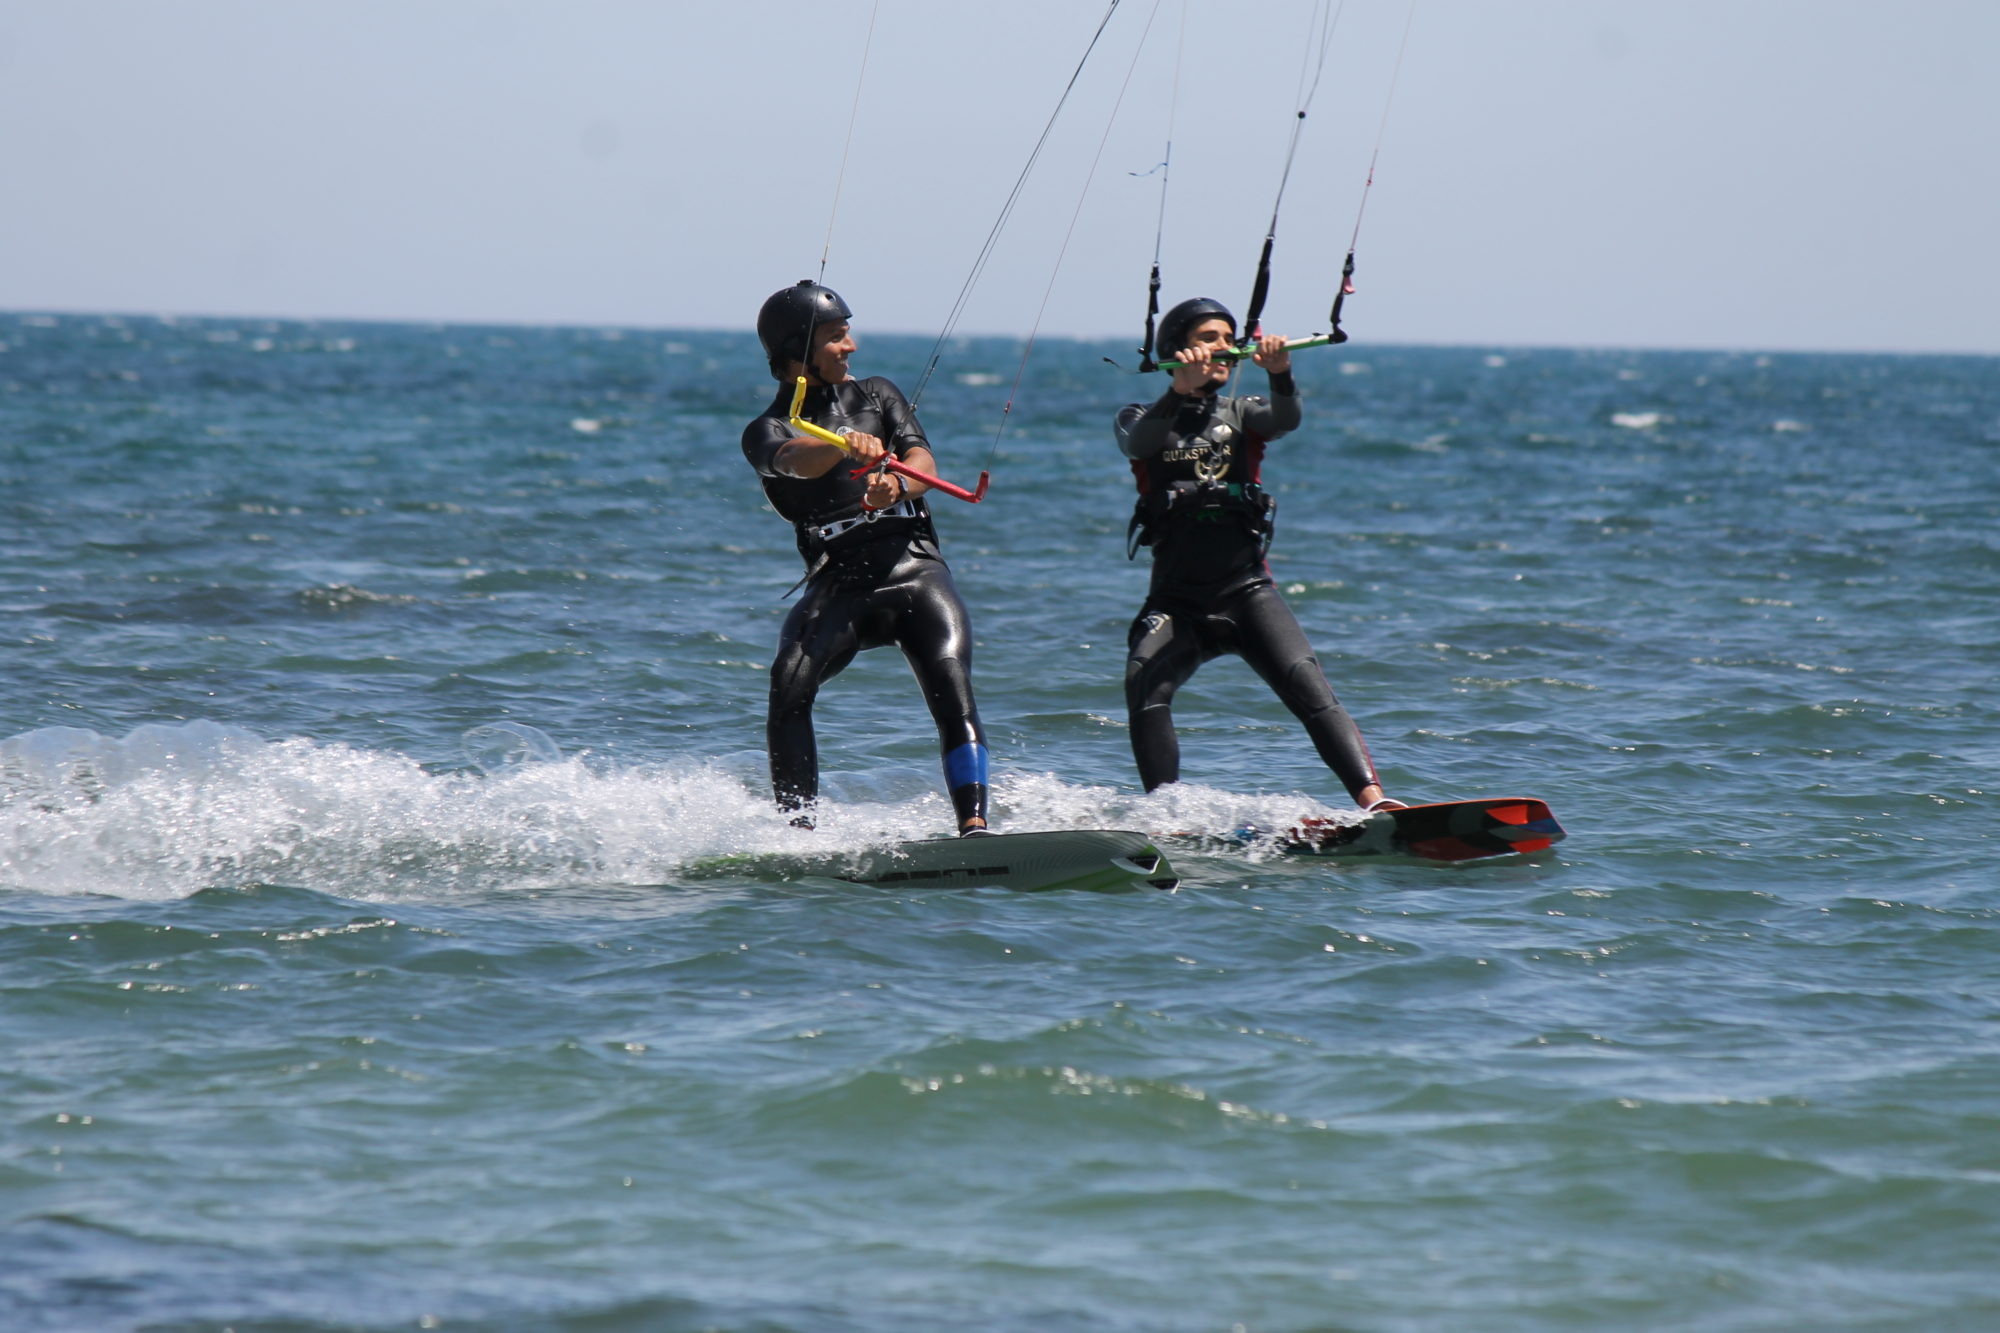 Sardinia Kitesurfing Spots: Kitesurfing Petrol Beach, kite spot close to Cagliari perfect with the thermal wind